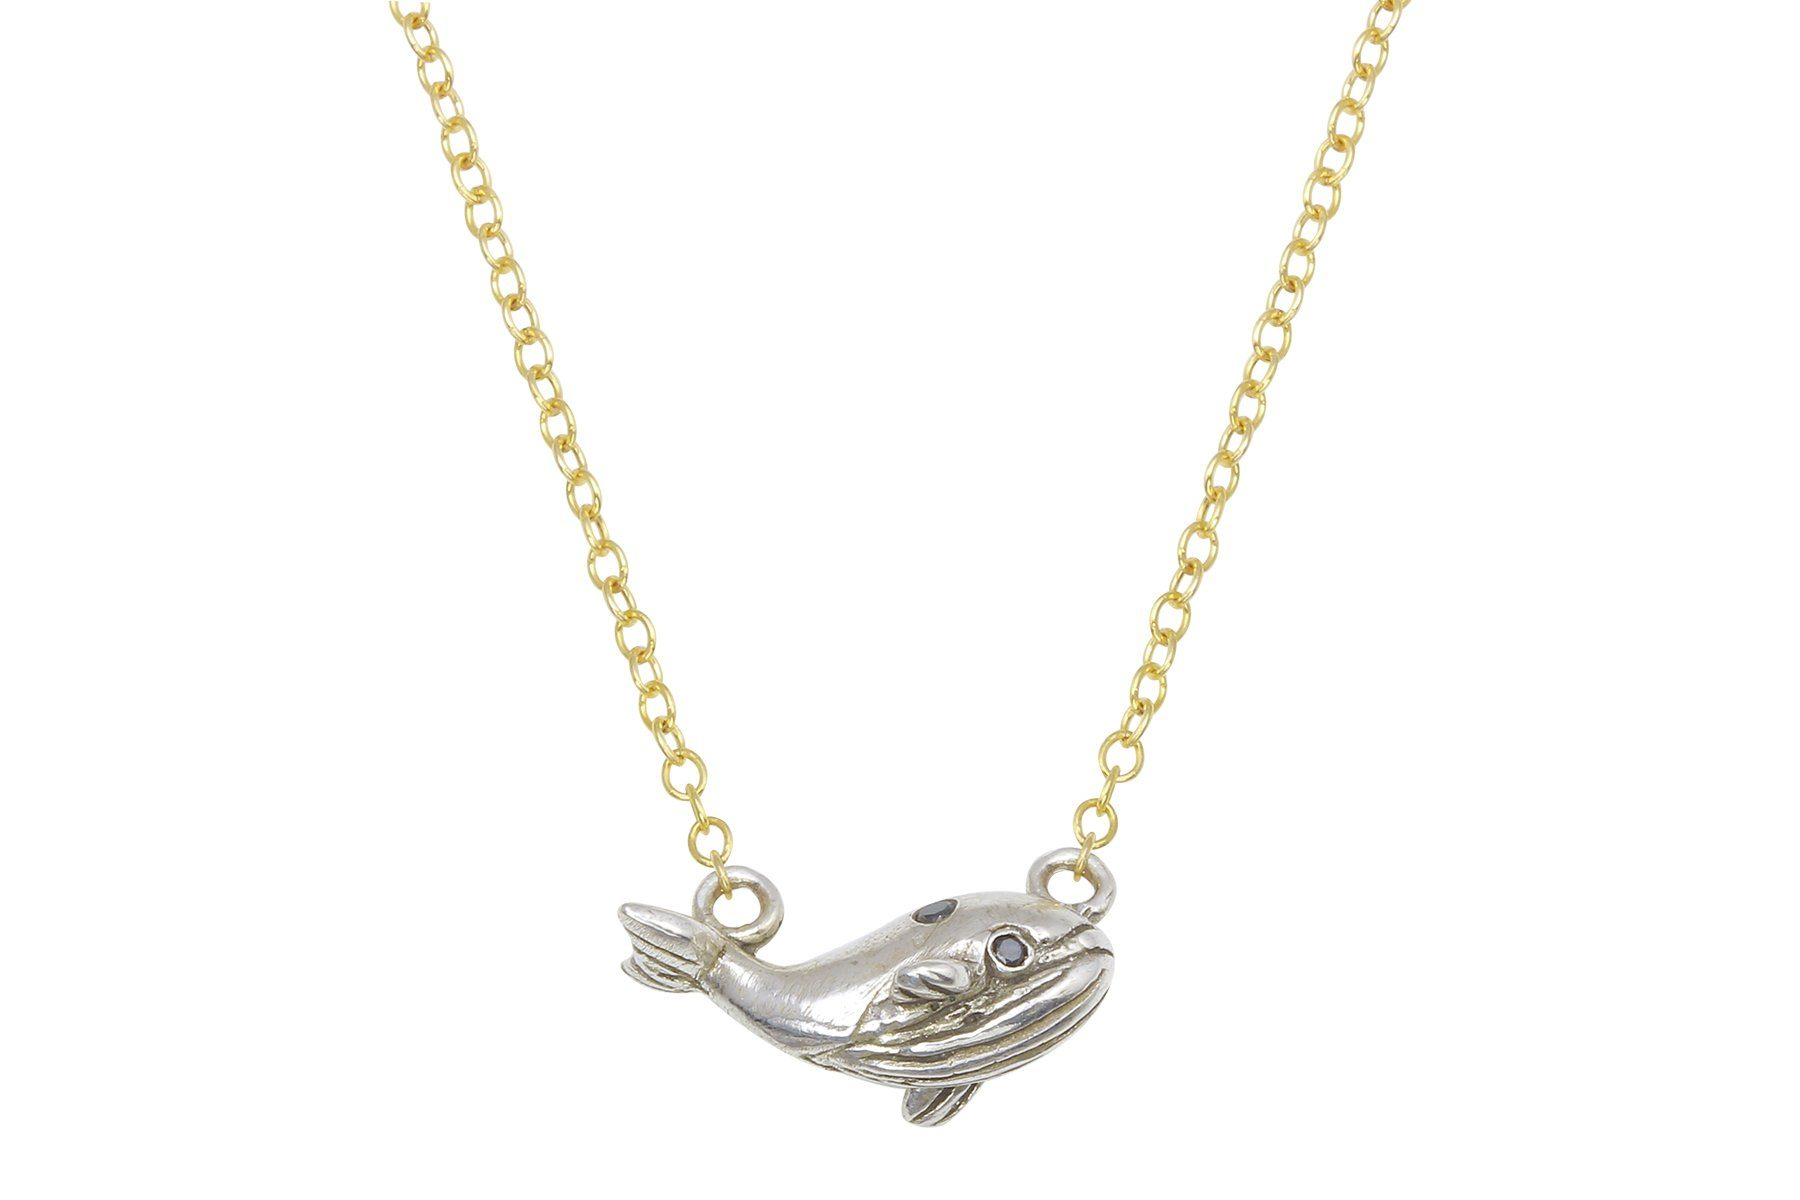 Tiny whale necklace - sterling silver and black diamond - Amanda K Lockrow